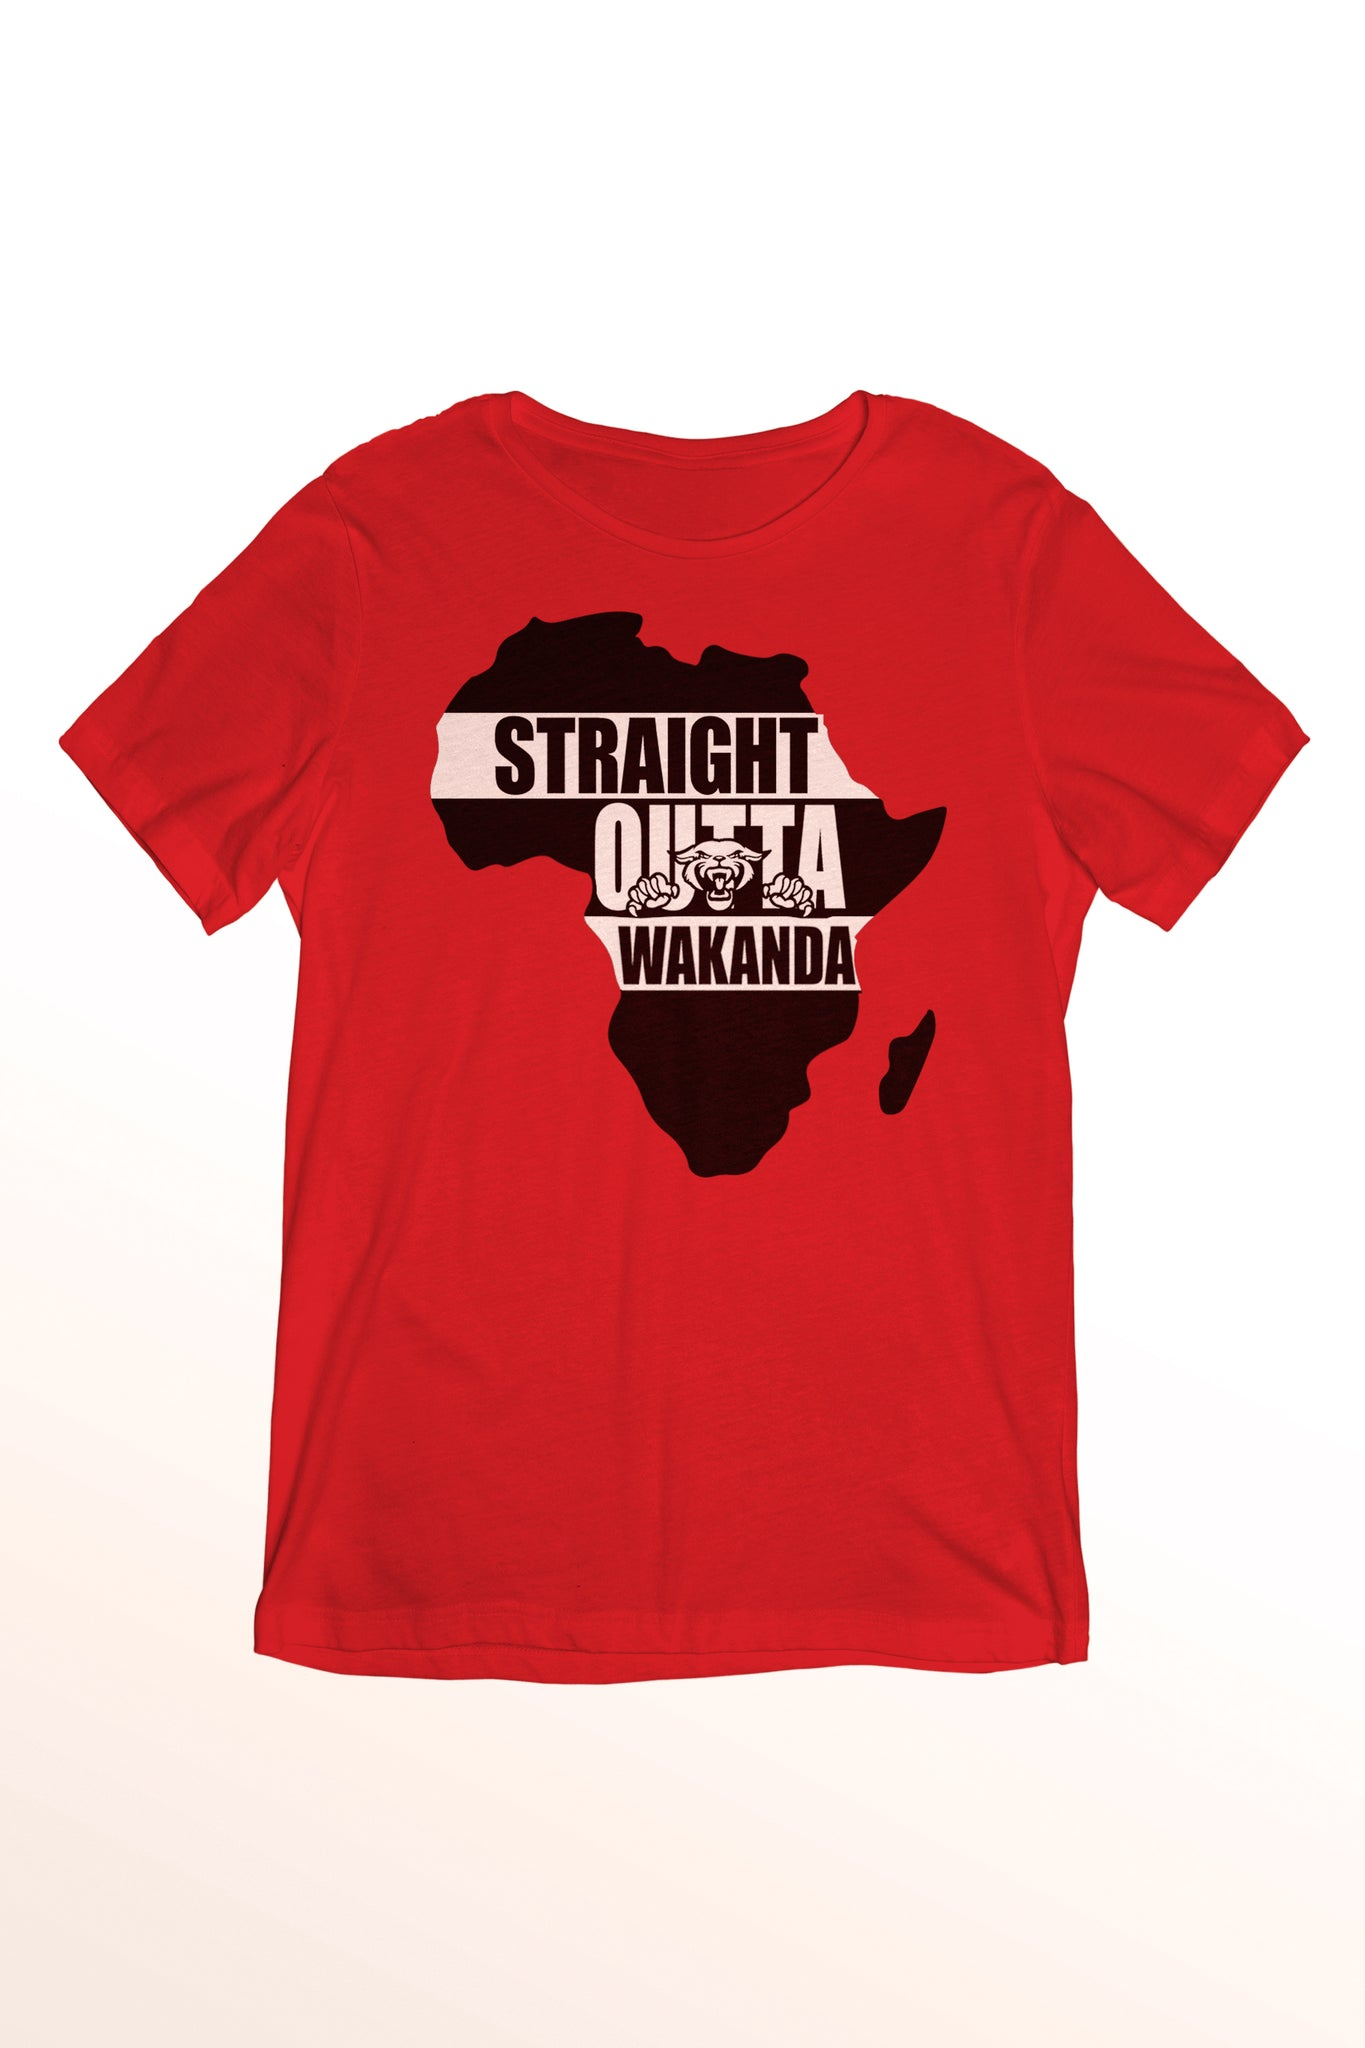 Motherland Short Sleeve T-shirt 100% cotton in black, gray, and red from www.StraightOuttaWakanda.com